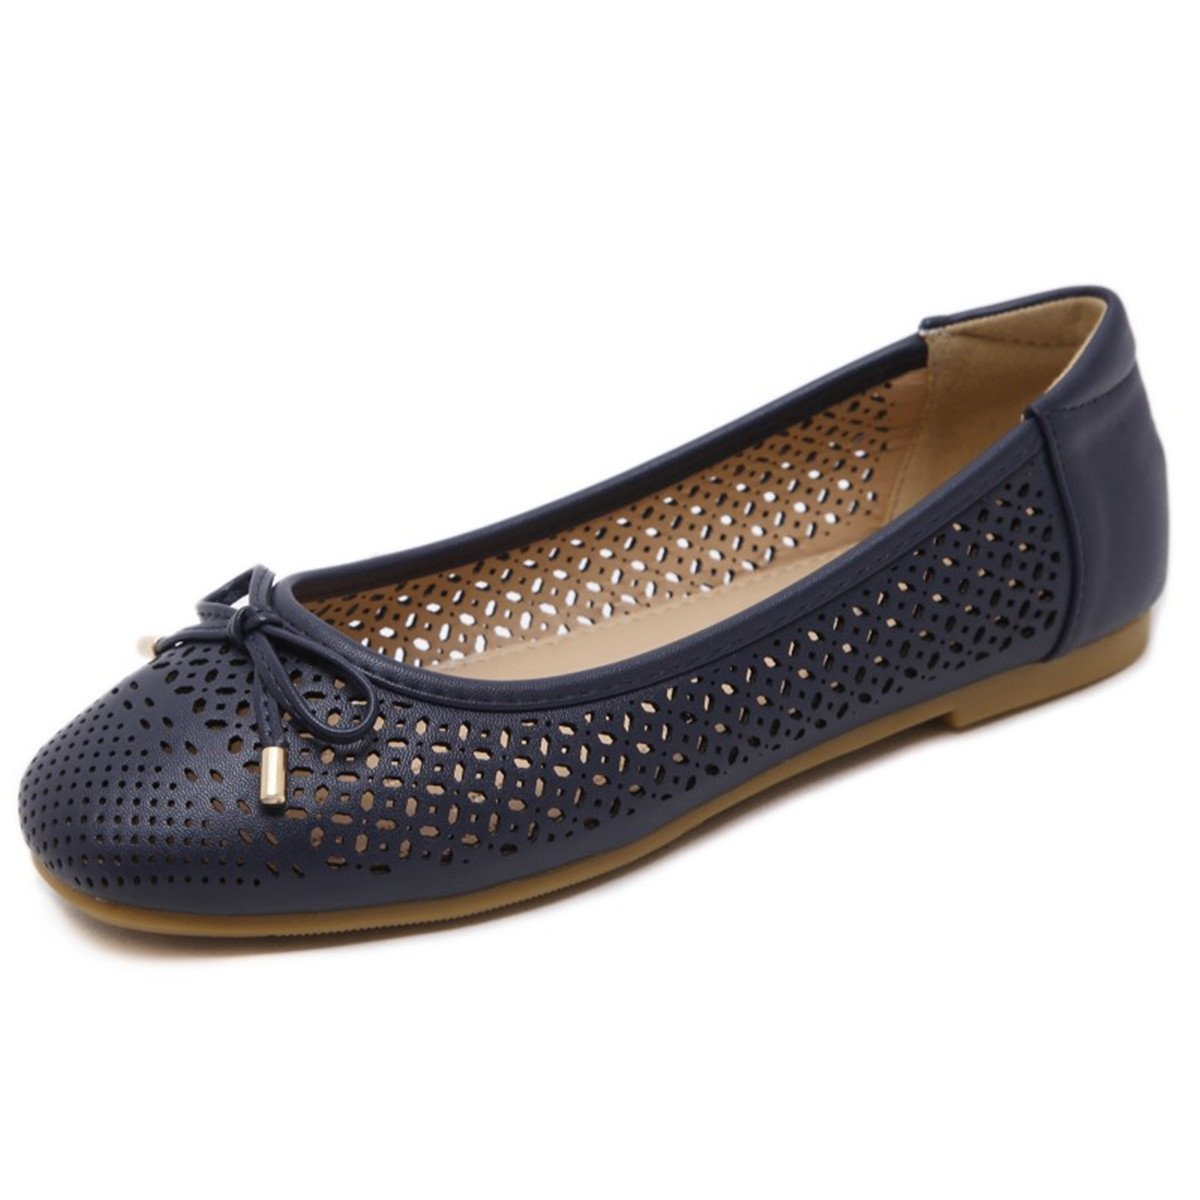 Nutsima Women Casual Flat Shoes Woman Squard Toe Ballet Flats Loafers Peas Fashion Bowtie Slip On Boats Soft Lazy Shoes